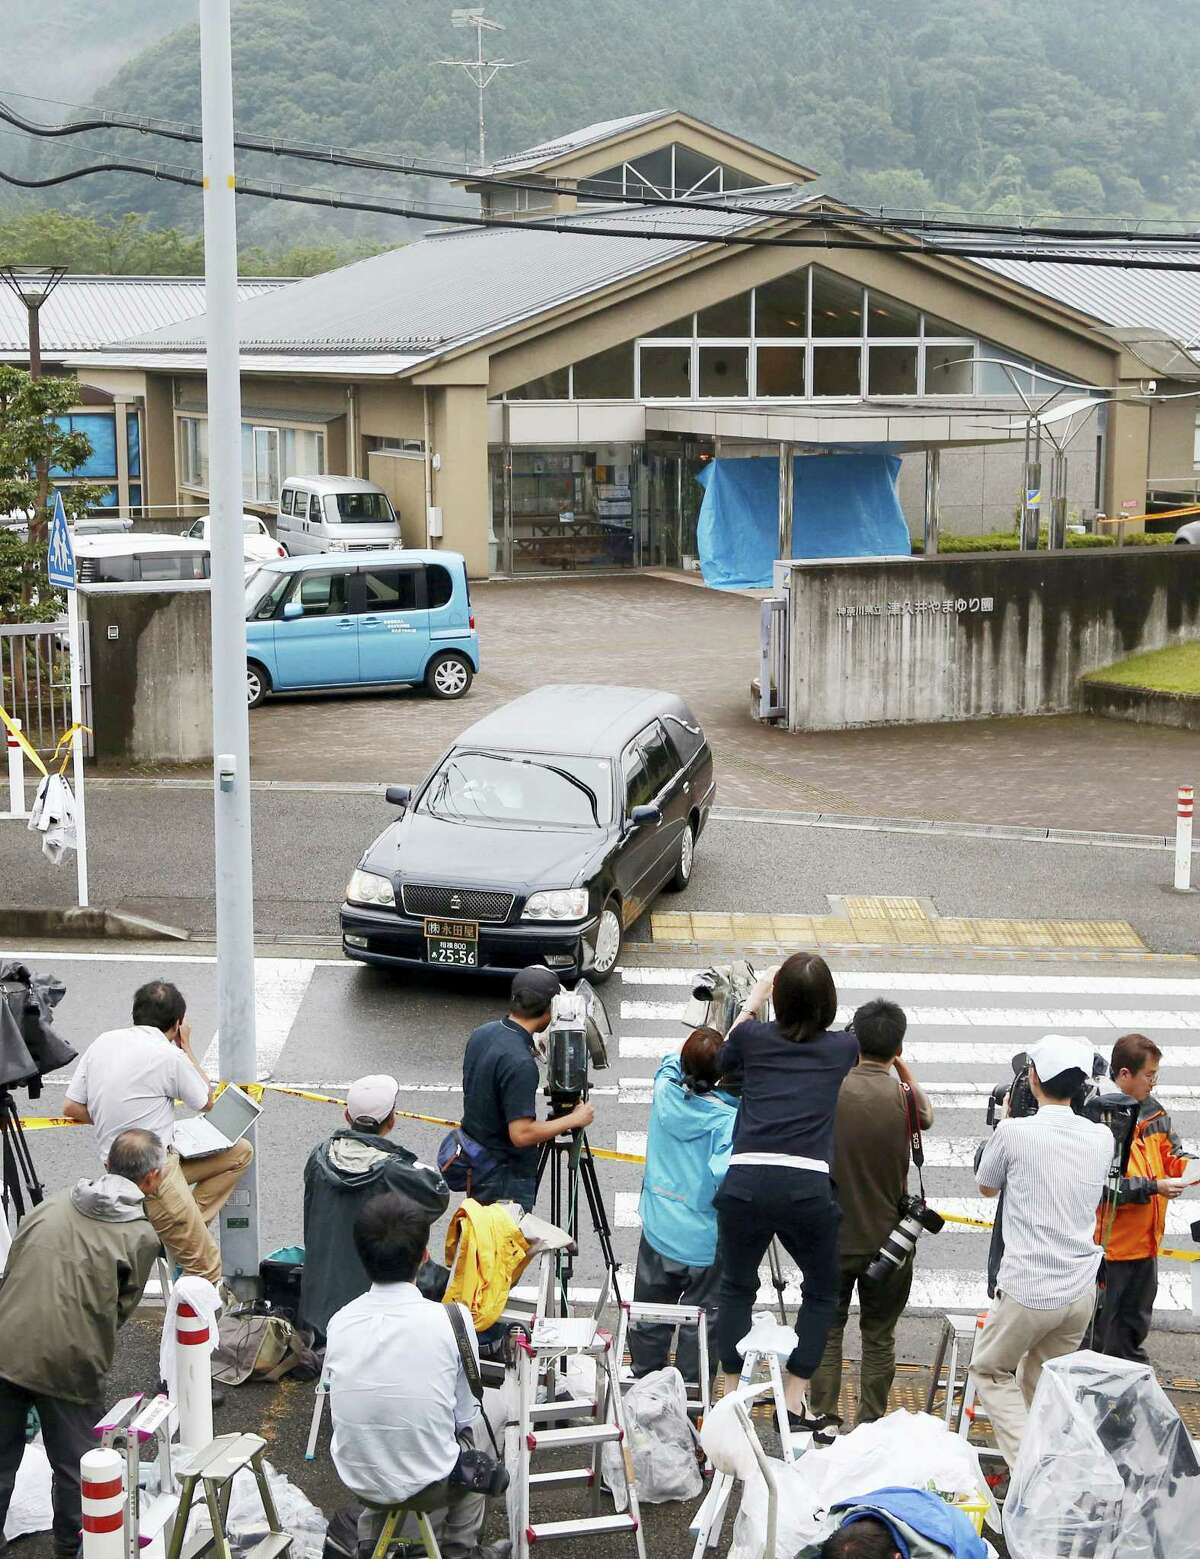 A hearse leaves the Tsukui Yamayuri-en, a facility for the mentally disabled where a number of people were killed and dozens injured in a knife attack Tuesday, July 26, 2016, in Sagamihara, outside Tokyo. A young Japanese man went on a stabbing rampage early Tuesday at the facility where he had been fired, officials said, killing many people months after he gave a letter to Parliament outlining the bloody plan and saying all disabled people should be put to death.